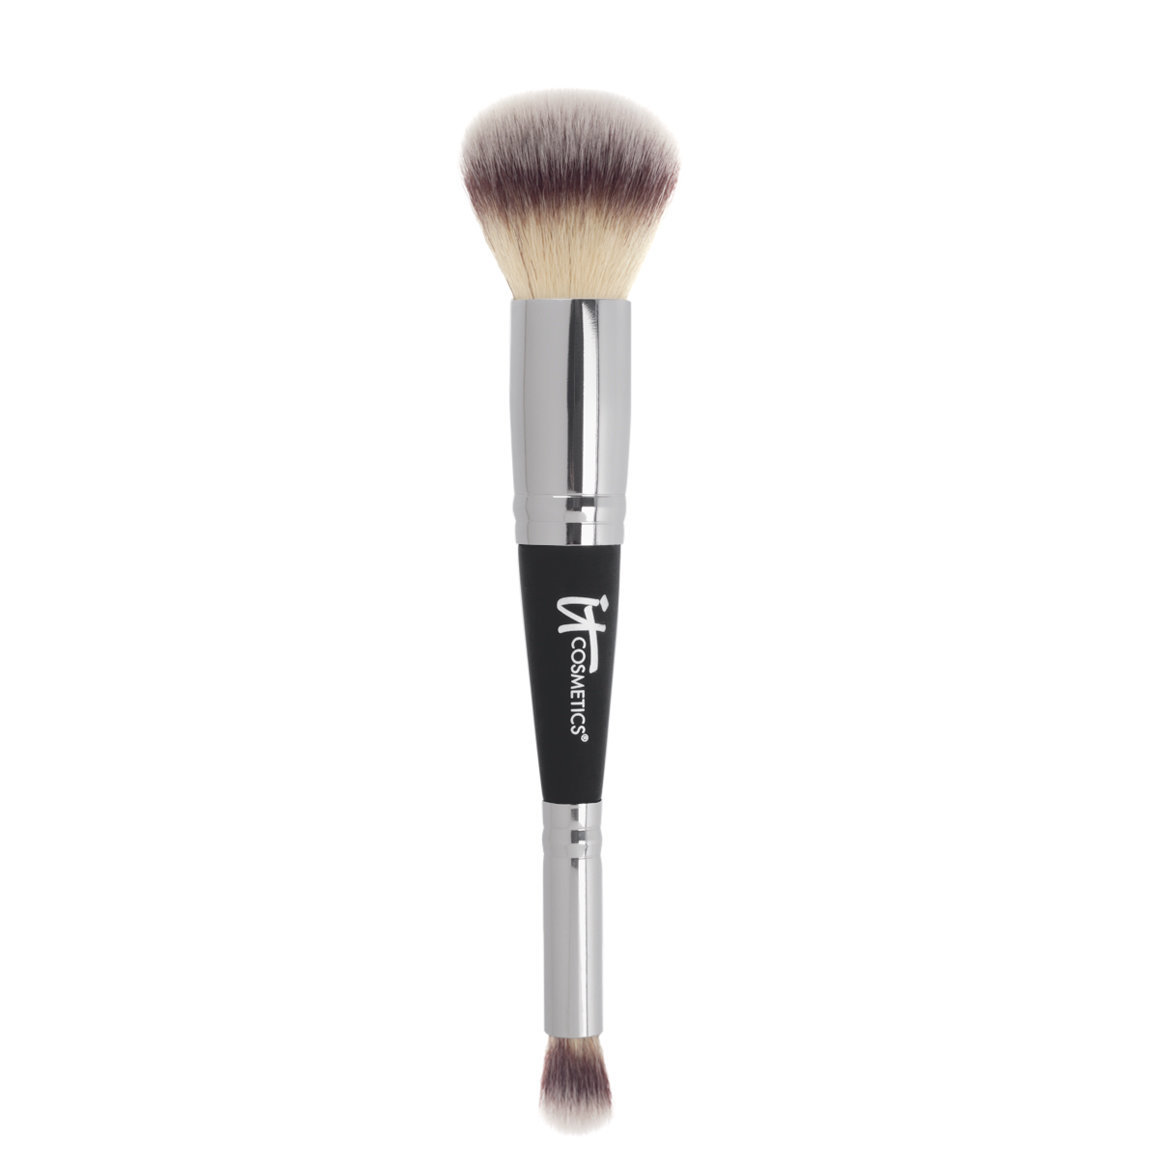 IT Cosmetics  Heavenly Luxe Complexion Perfection Brush #7 product smear.